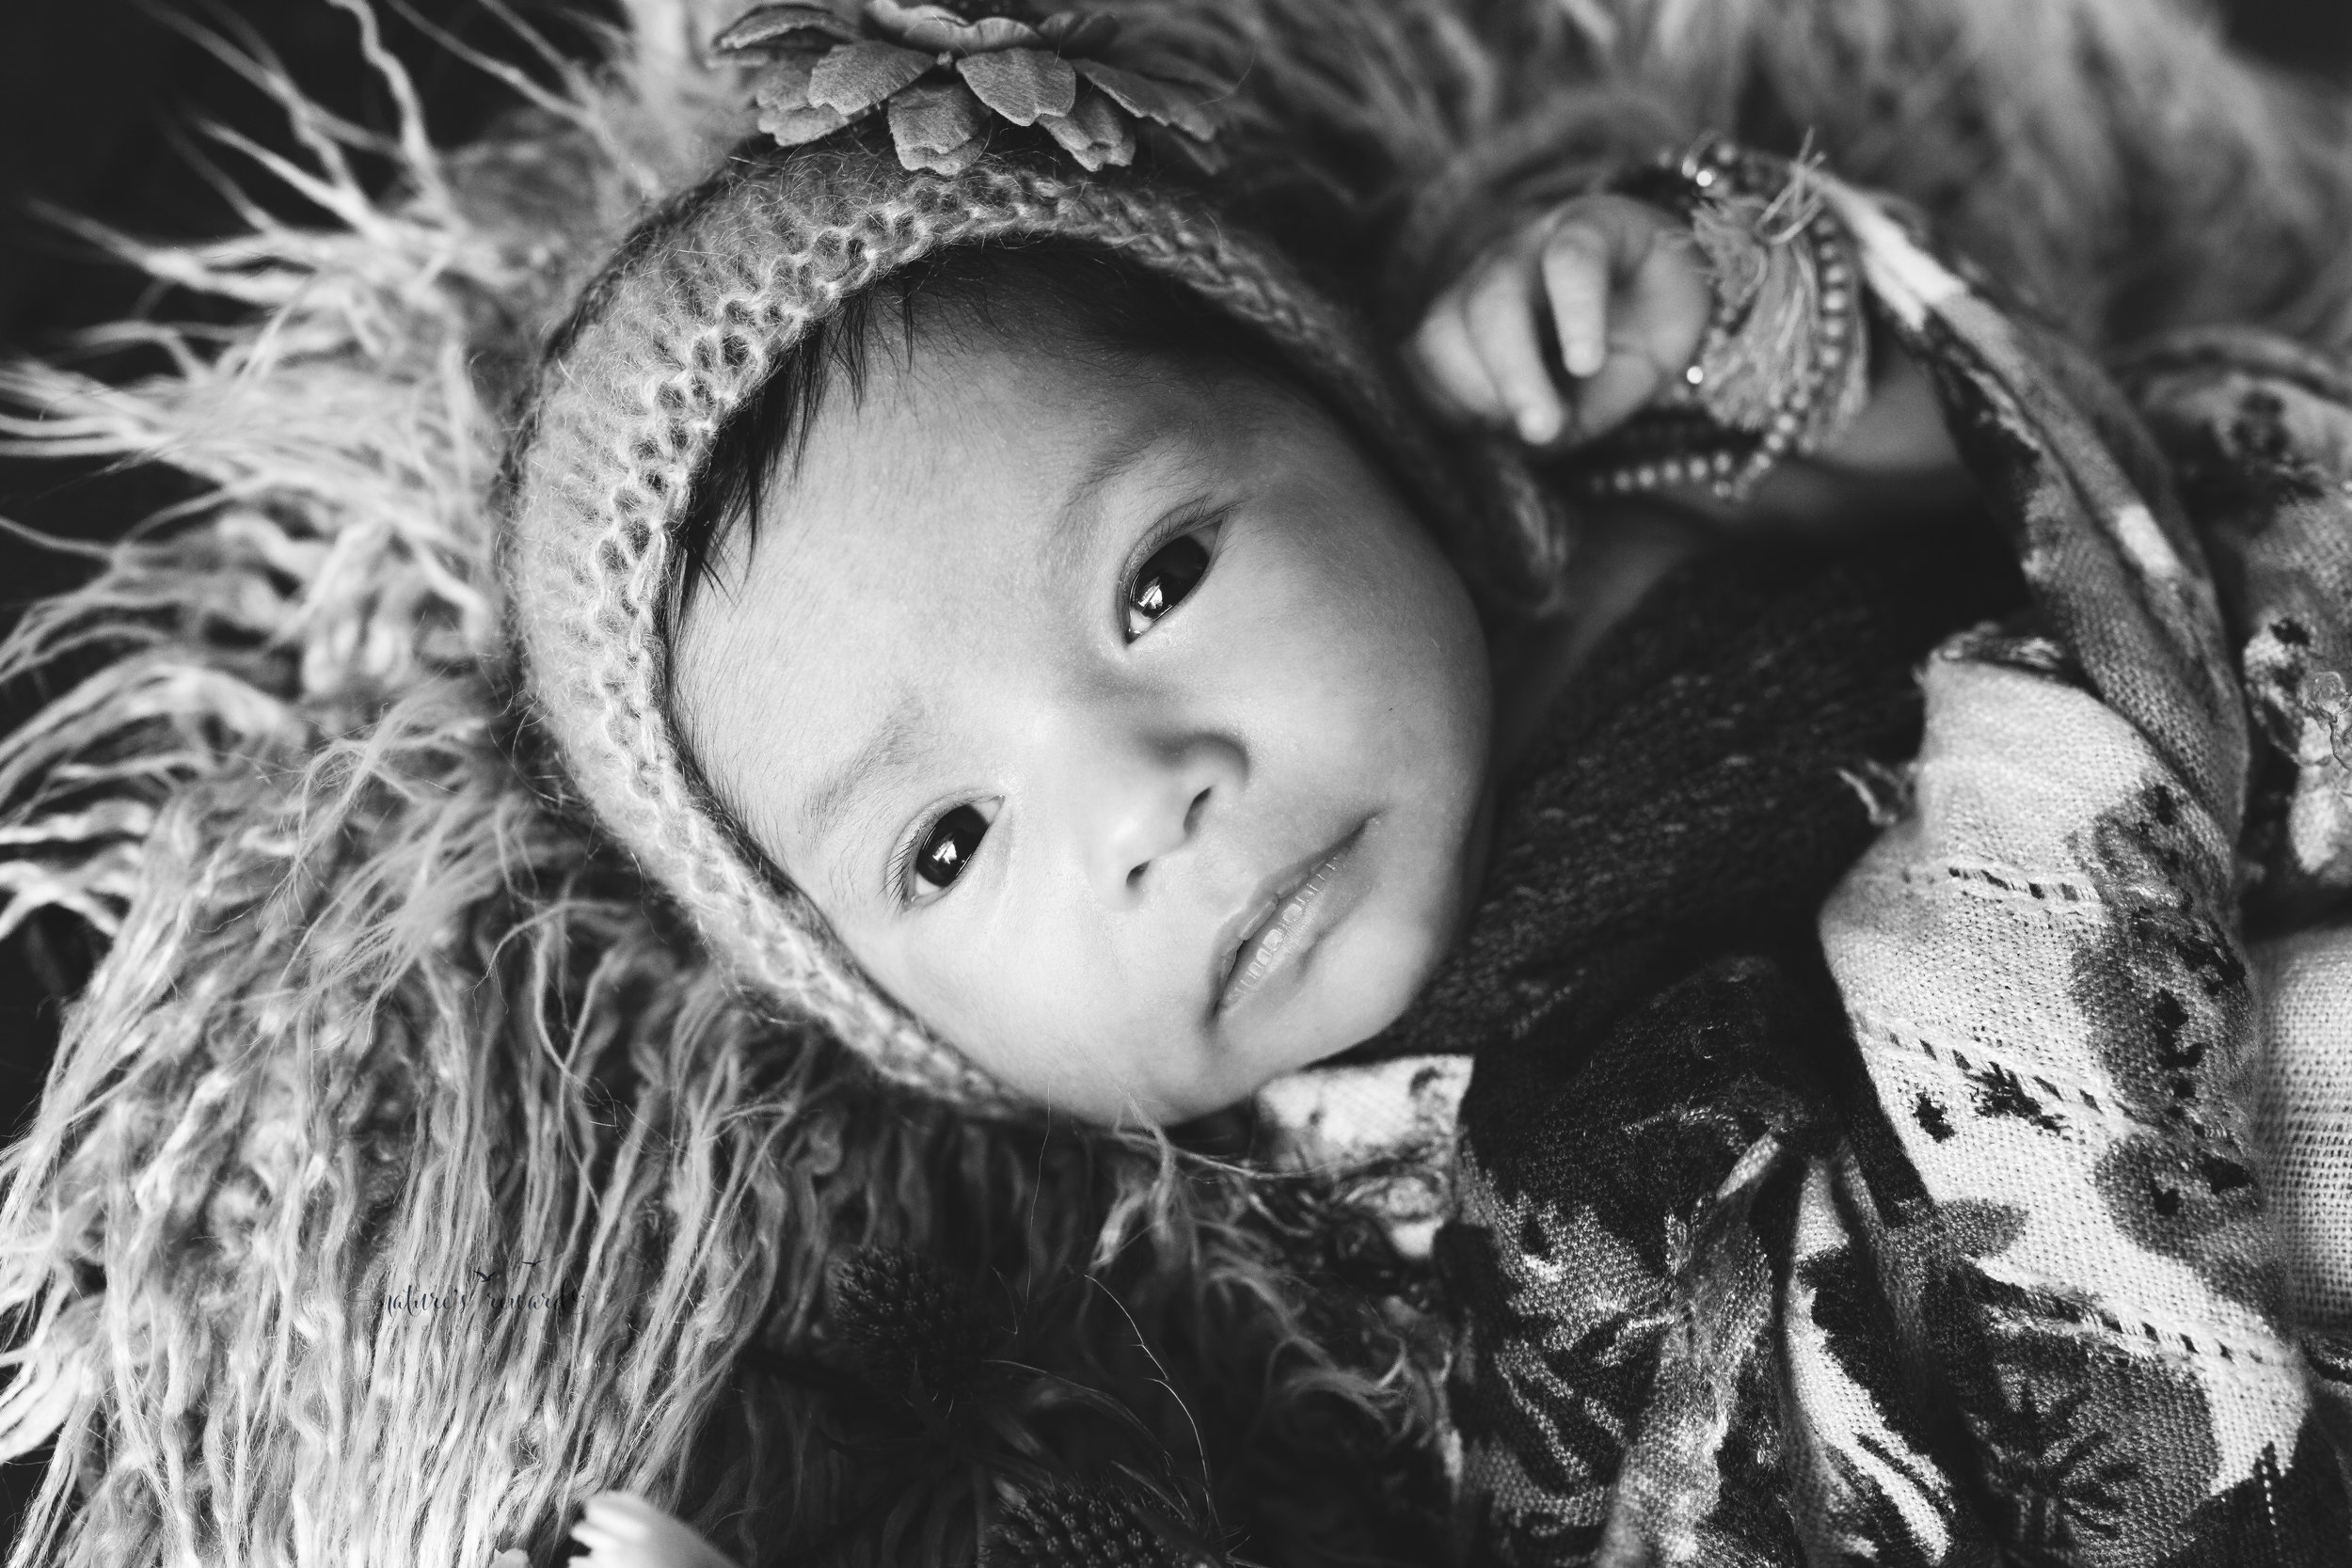 And a sweet Newborn girl. Awake. Her eyes startling in this black and white image.